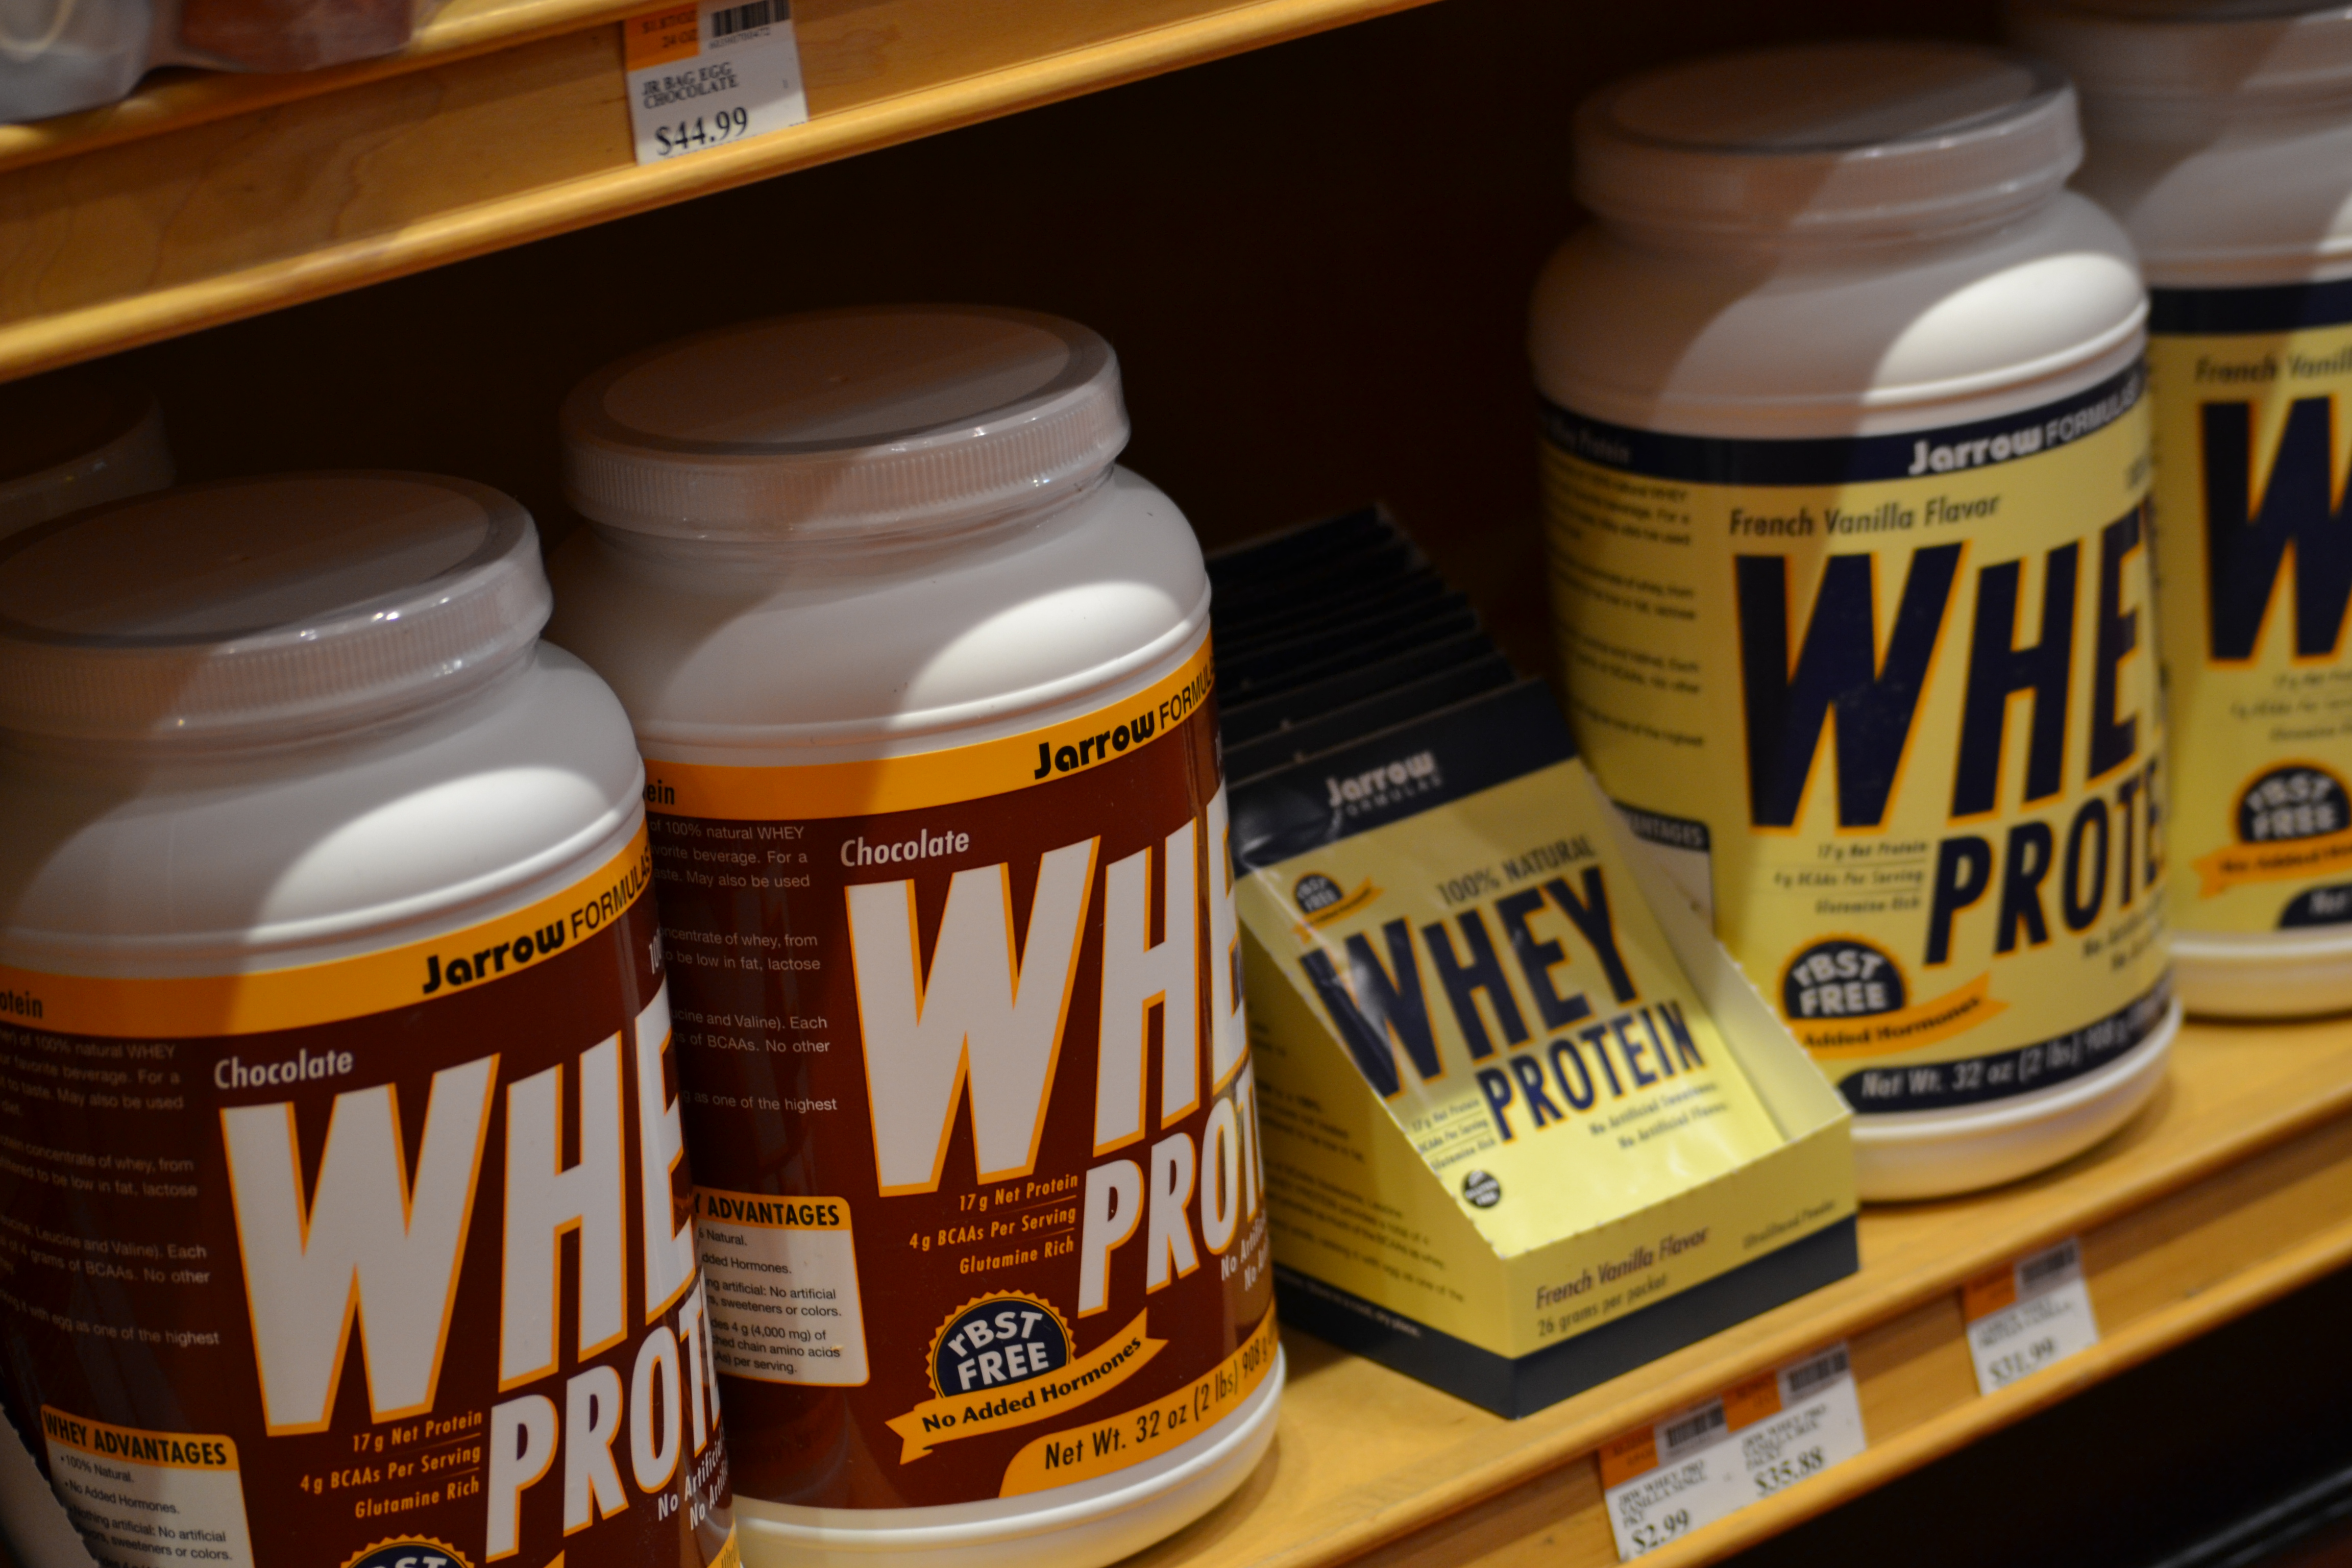 The Wonderful World of Whey Protein